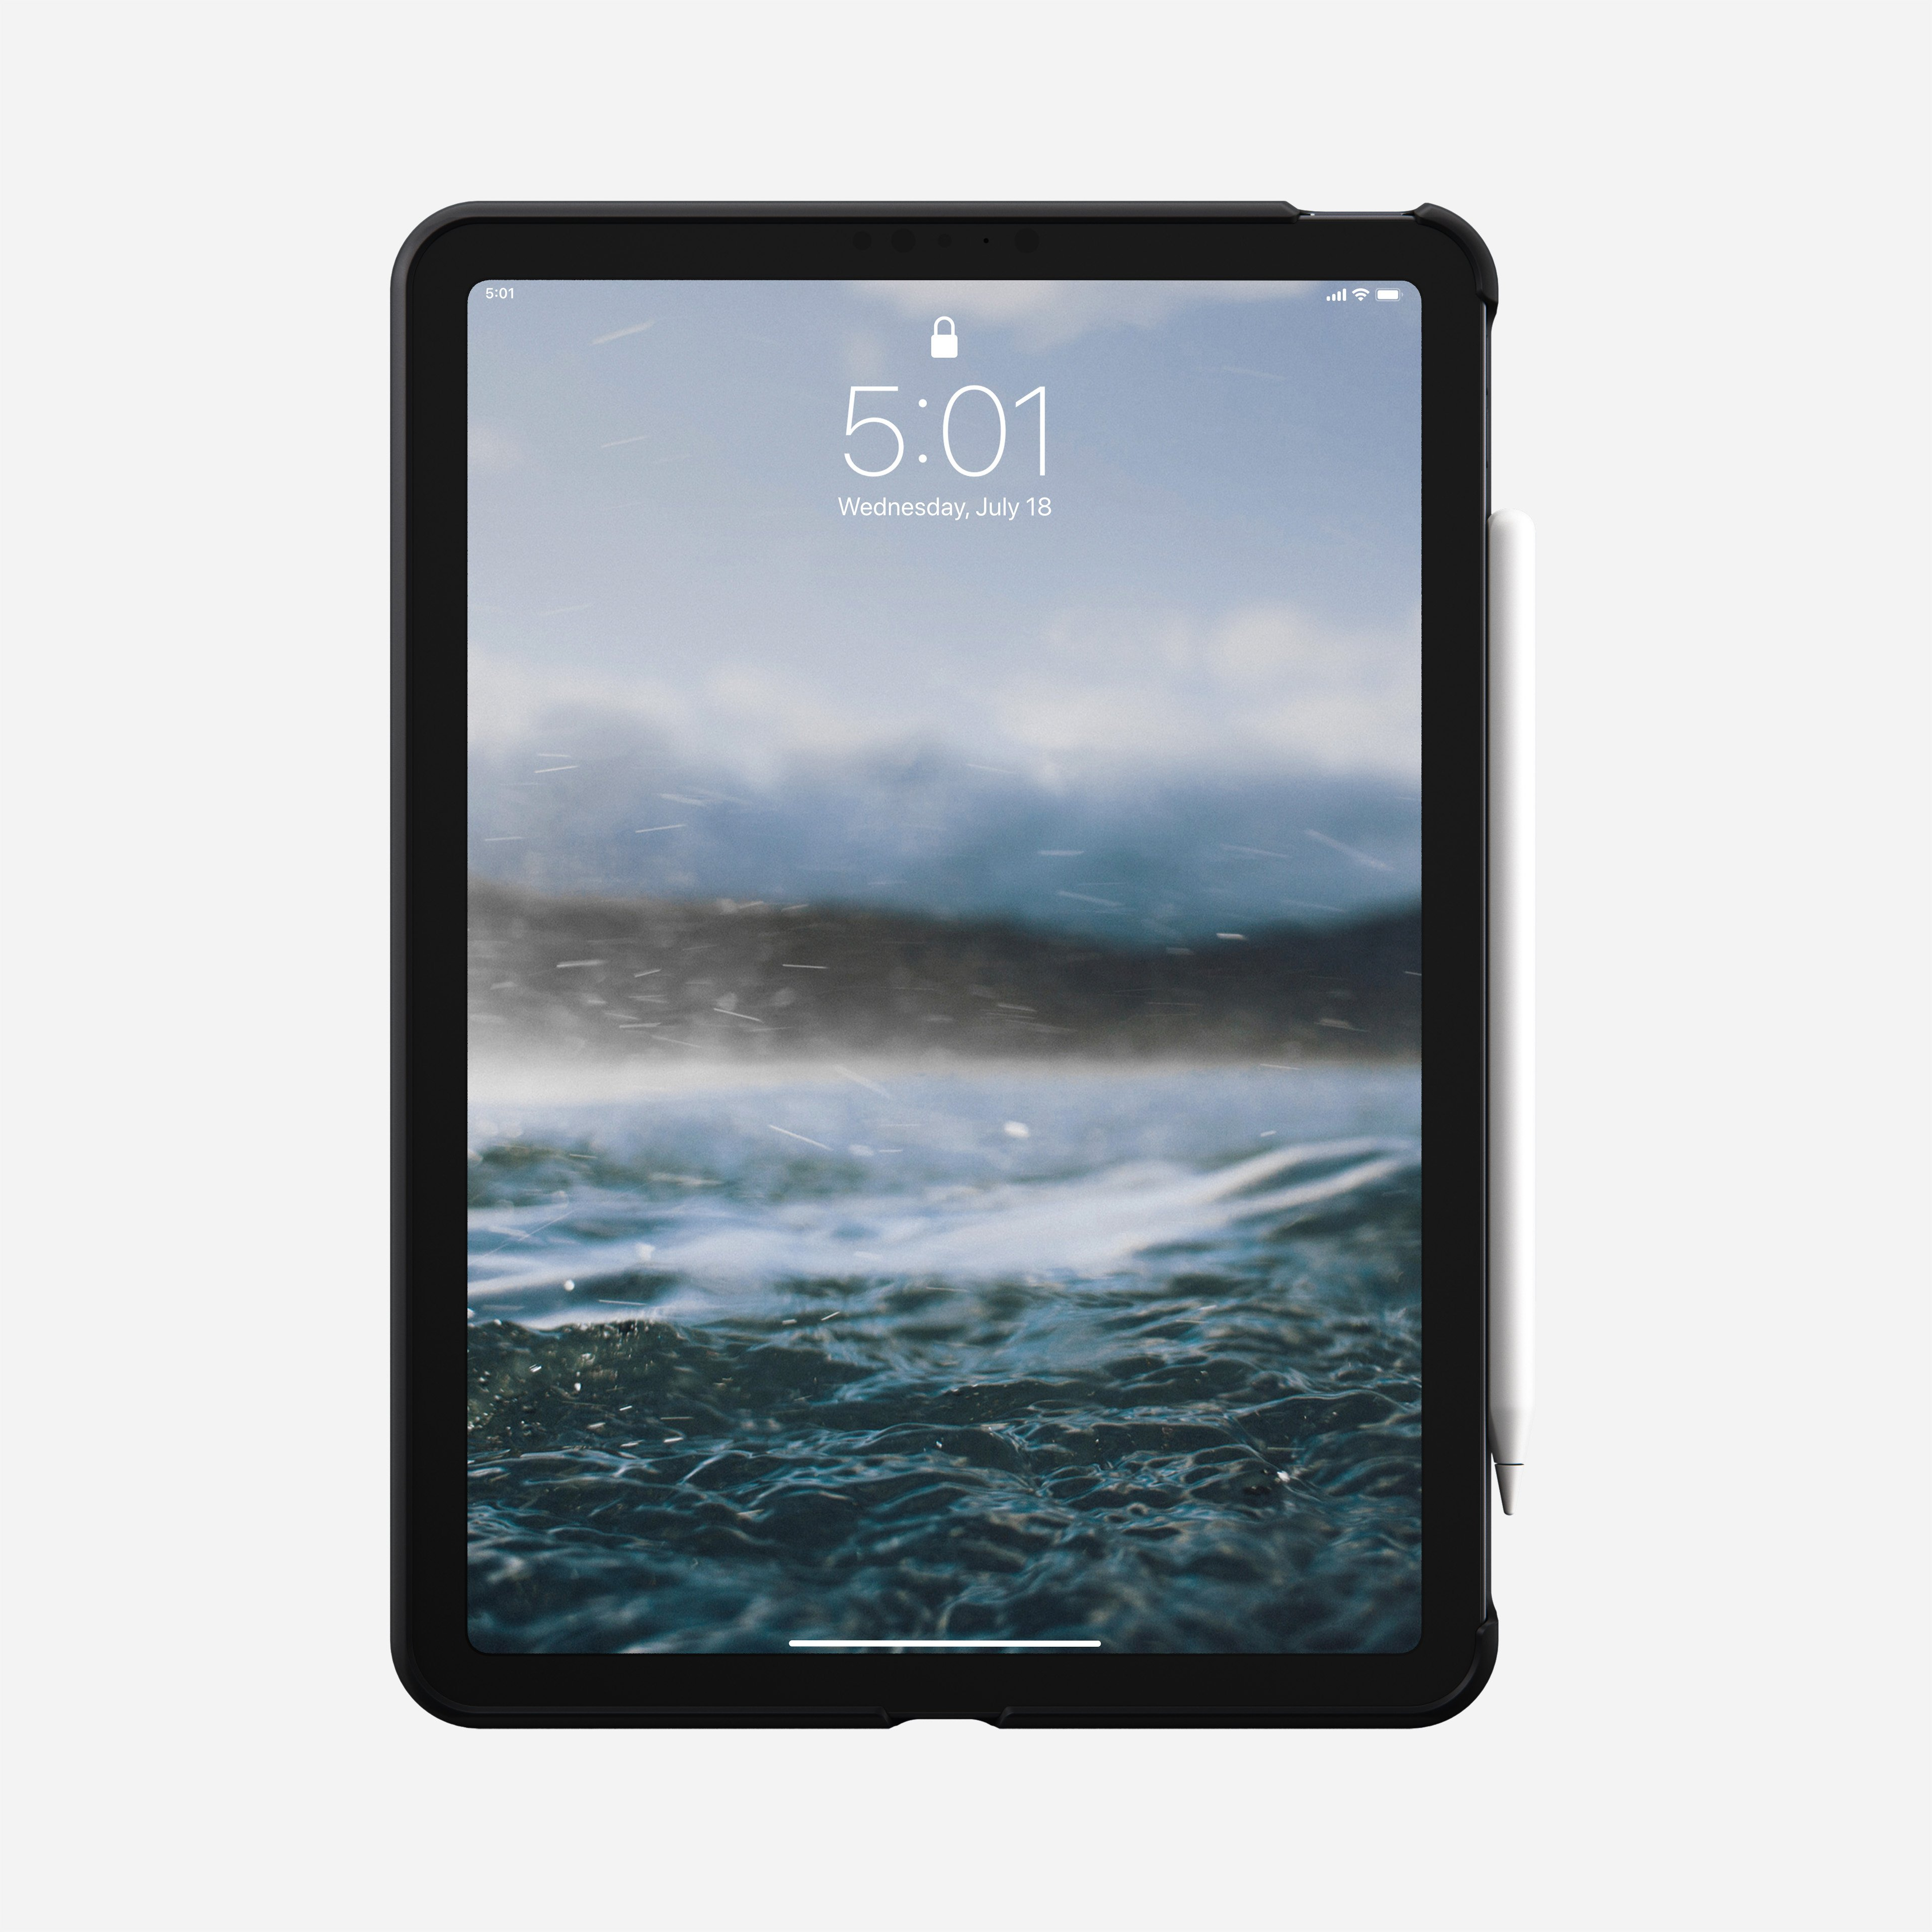 Rugged case horween leather black ipad air 4th generation